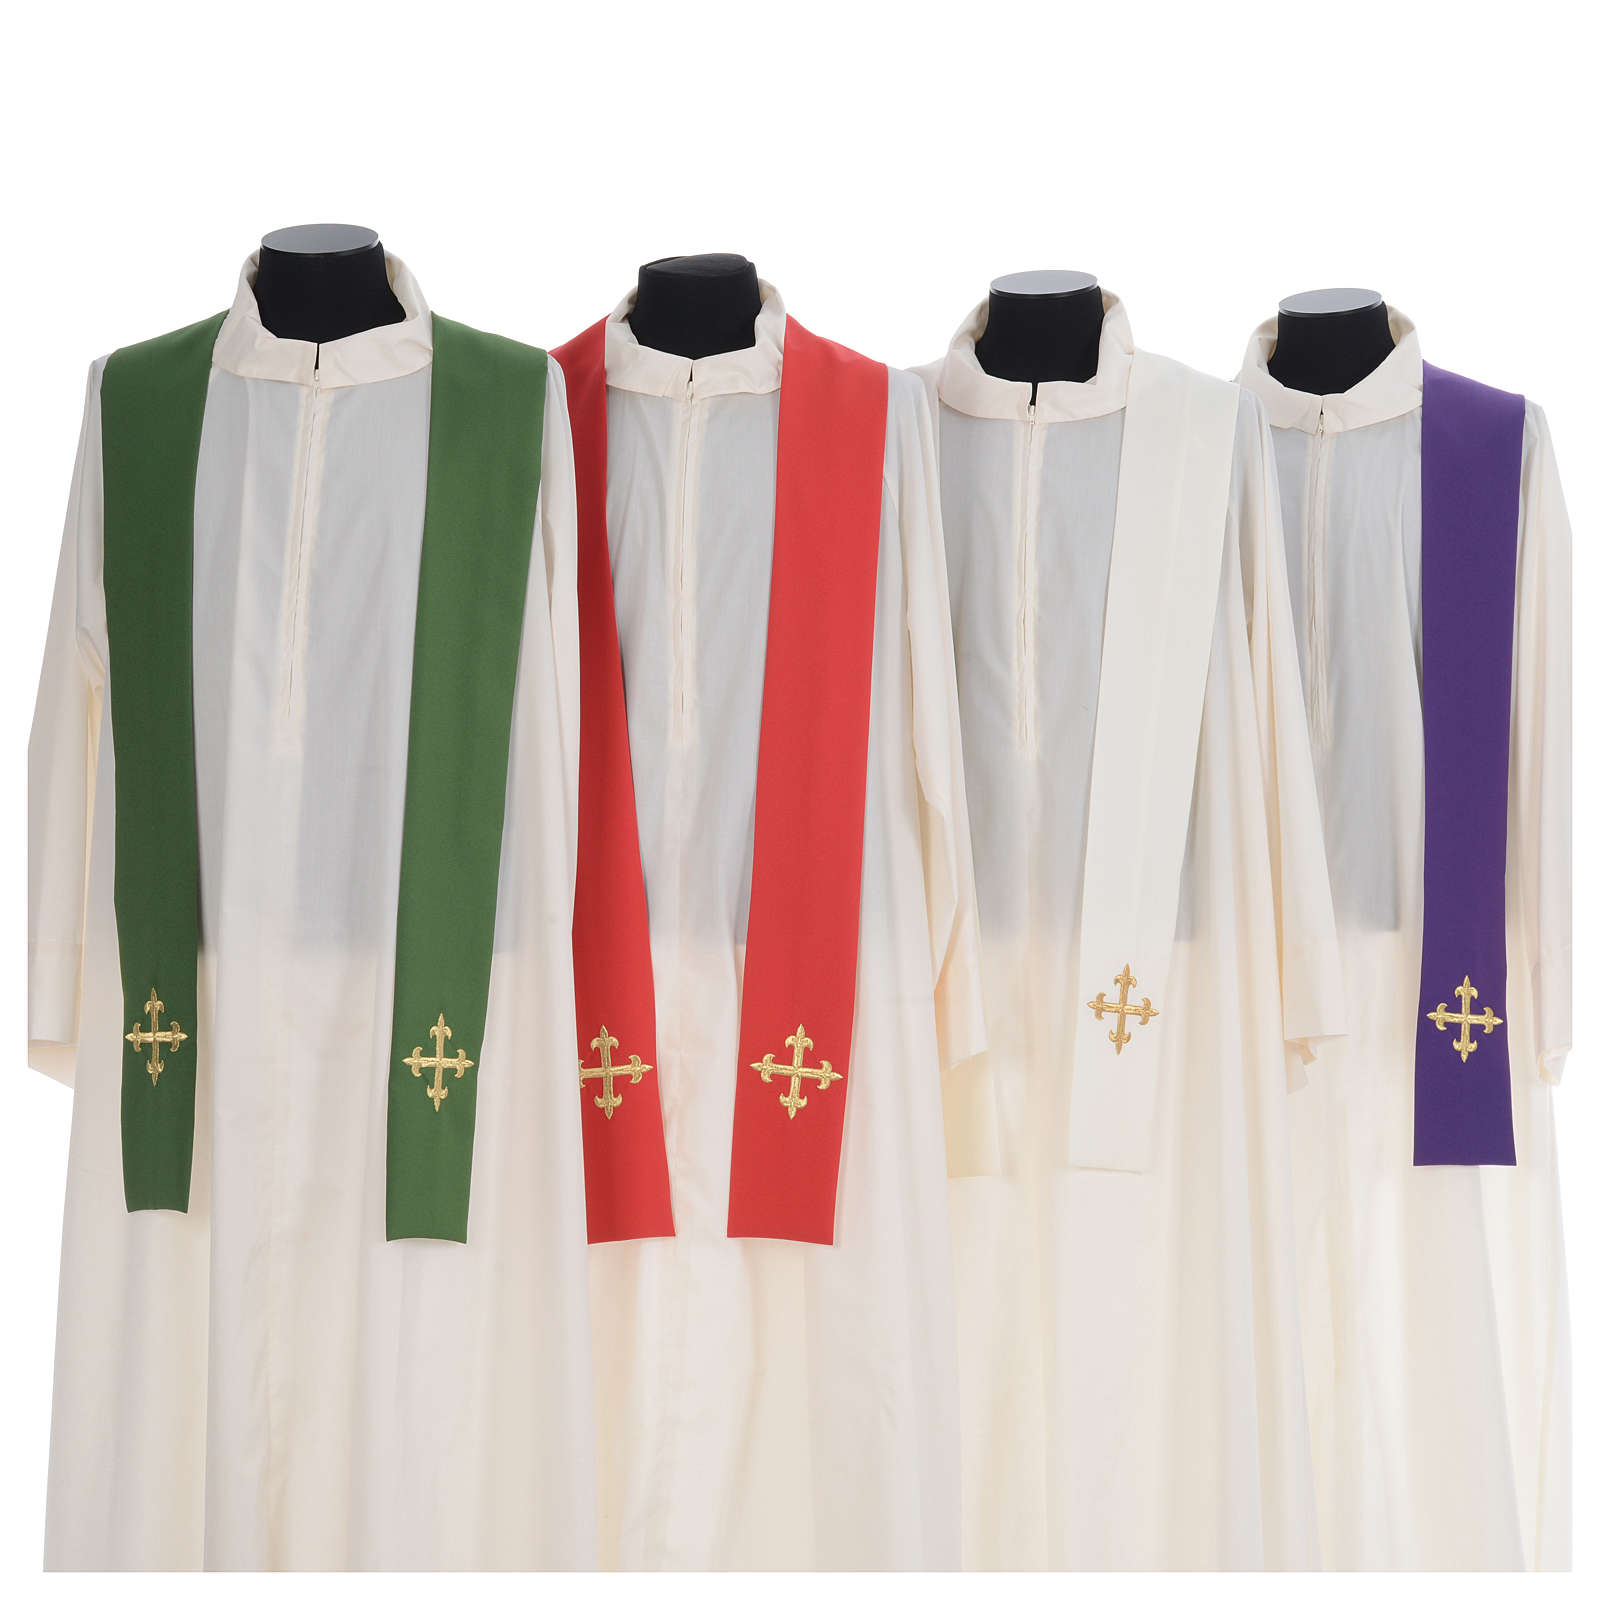 Gold Embroidered Cross Chasuble 100% polyester 4